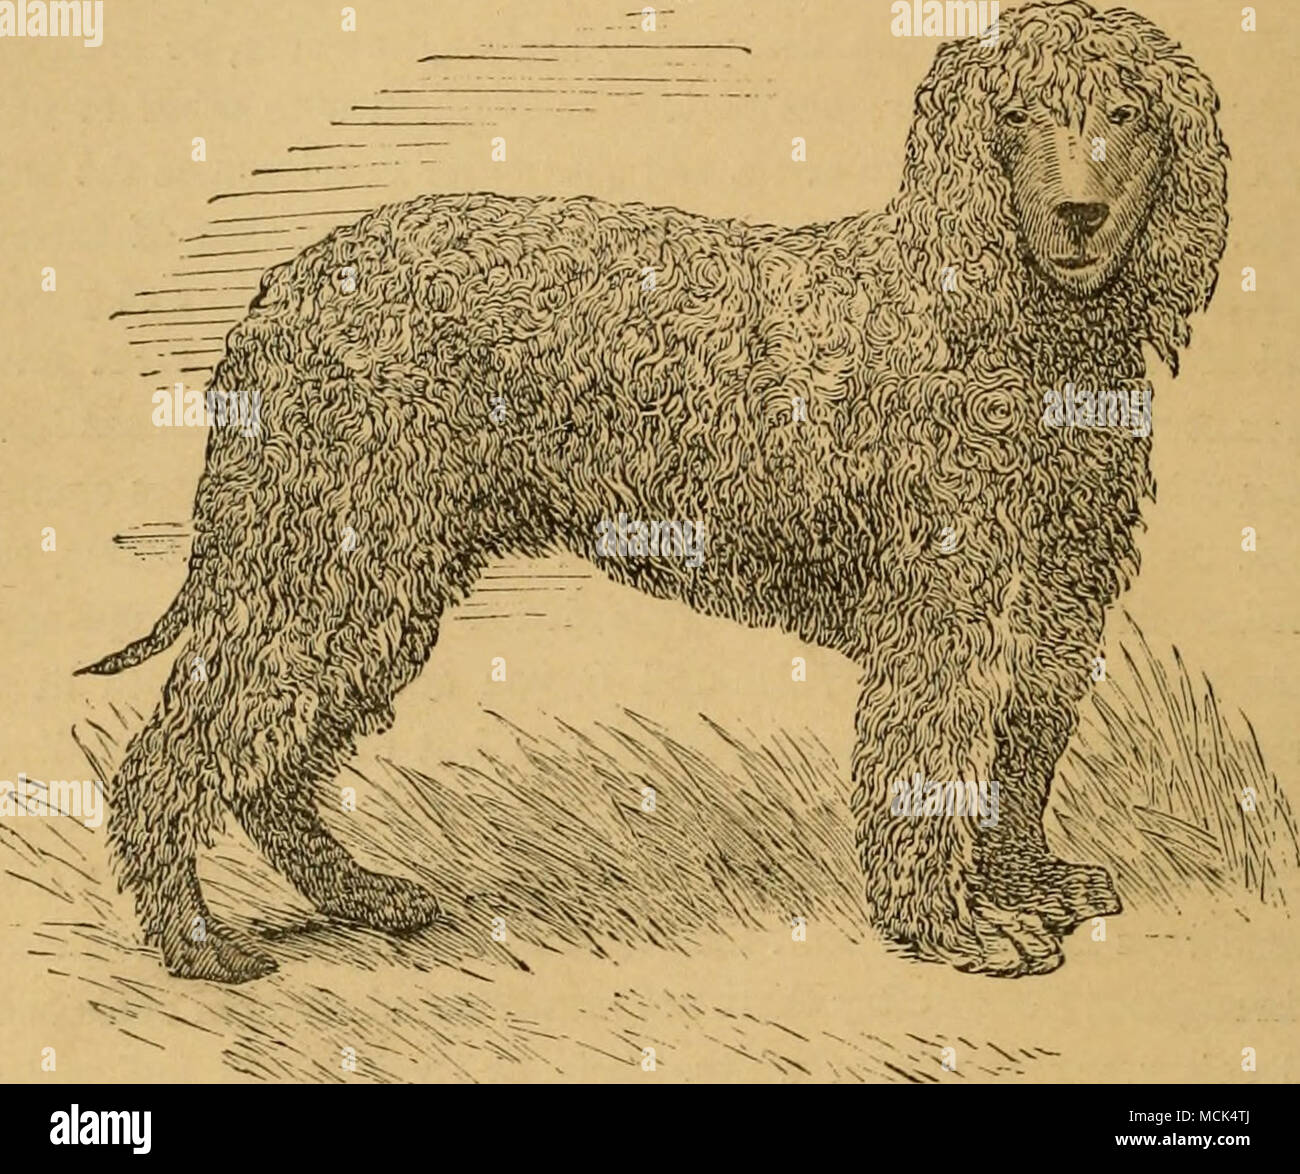 . Fig. 31.—IKISH WATER SPANIEL, KAKE. THE WATER SPANIEL. Wate?- Spaniels are commonly said to have web-feet, and this point is often made a ground of distinction from other dogs, but the fact is that all dogs have their toes united by membranes in the same way, the only distinction between the water and land dogs being that the former have larger feet, and that the membrane between the toes being more lax, they spread more in swimming, and are thus more useful in the water. Most people would un- derstand, from the stress laid on web-feet in the water dogs, that the toes of the land dogs were n - Stock Image